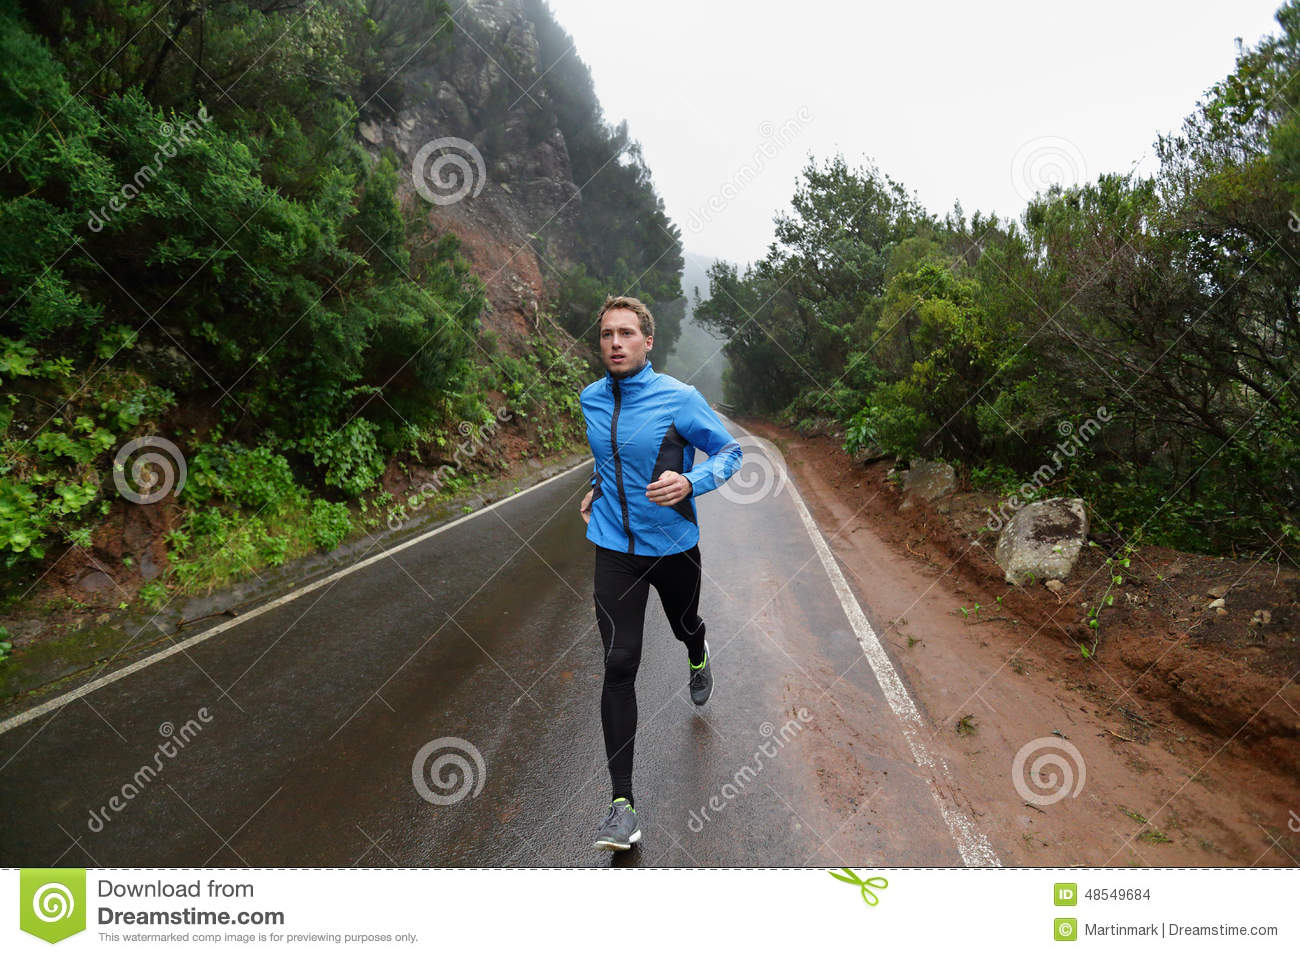 Male Runner Jogging And Running On Road In Nature Stock